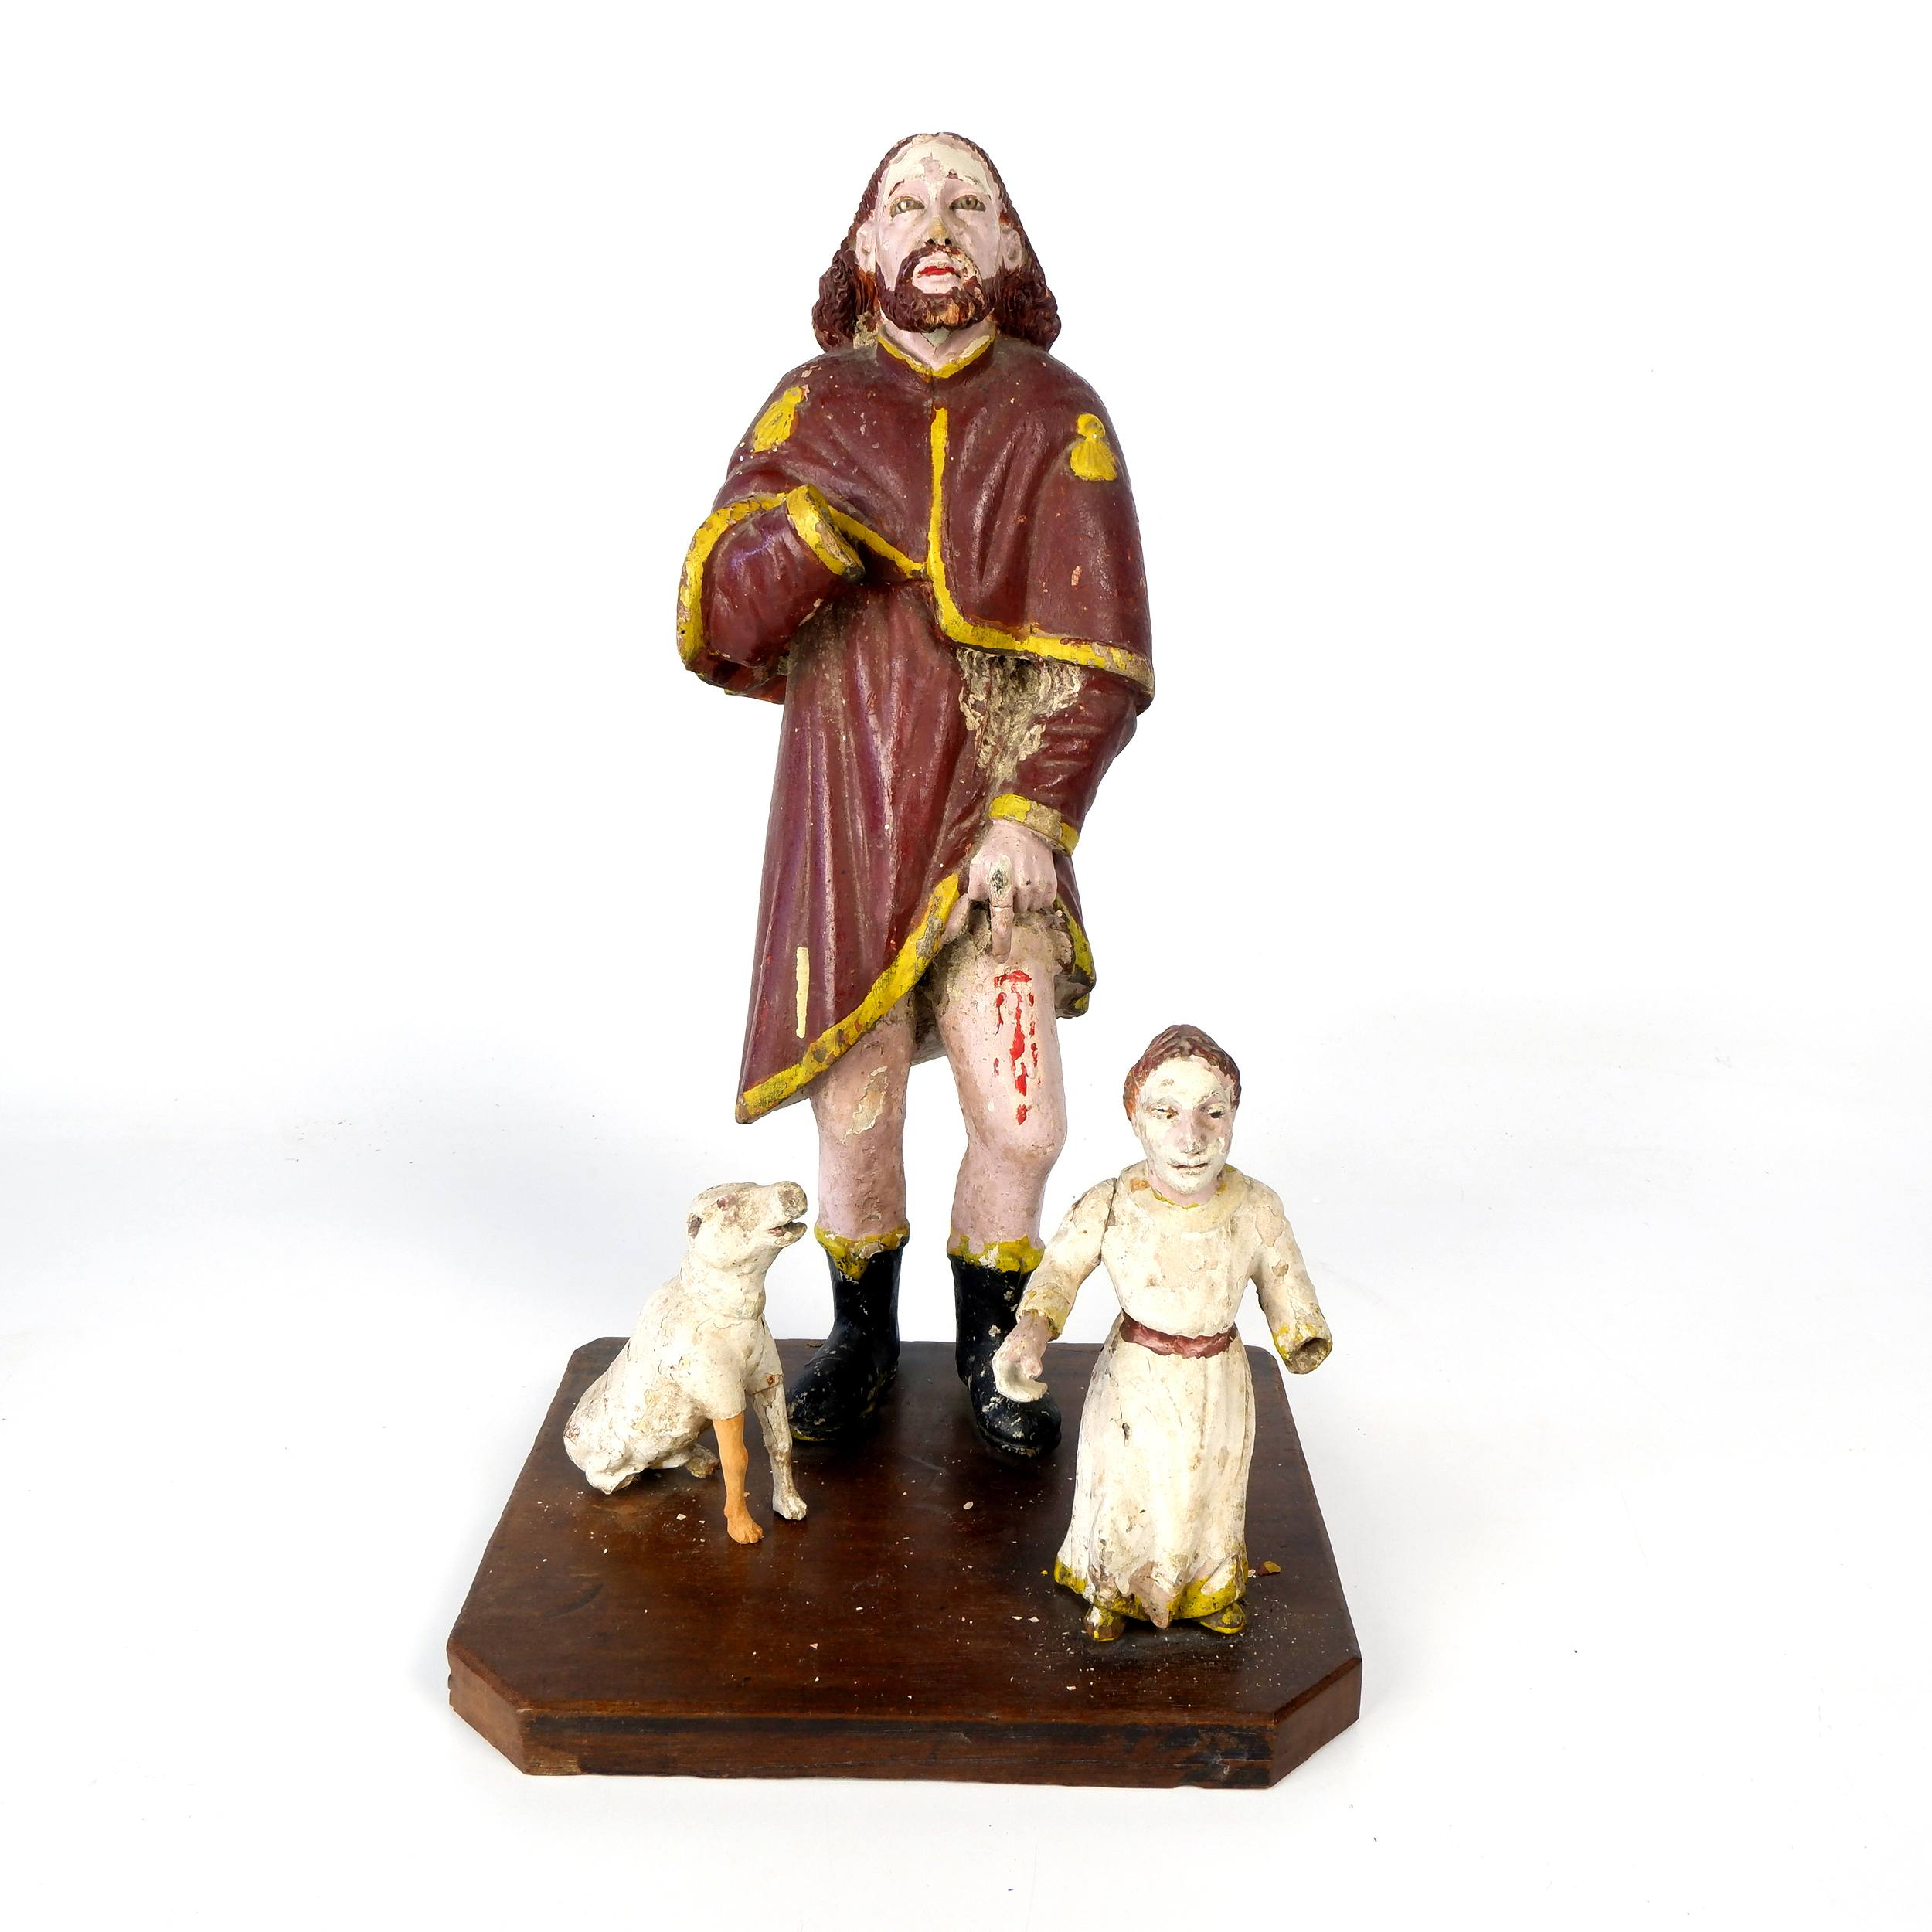 'Antique Philippino Hand Carved and Painted Santos Figure of Saint Roch Wearing Pilgrimage Garb and Pointing to a Lesion on his Thigh, Late 19th to Early 20th Century'